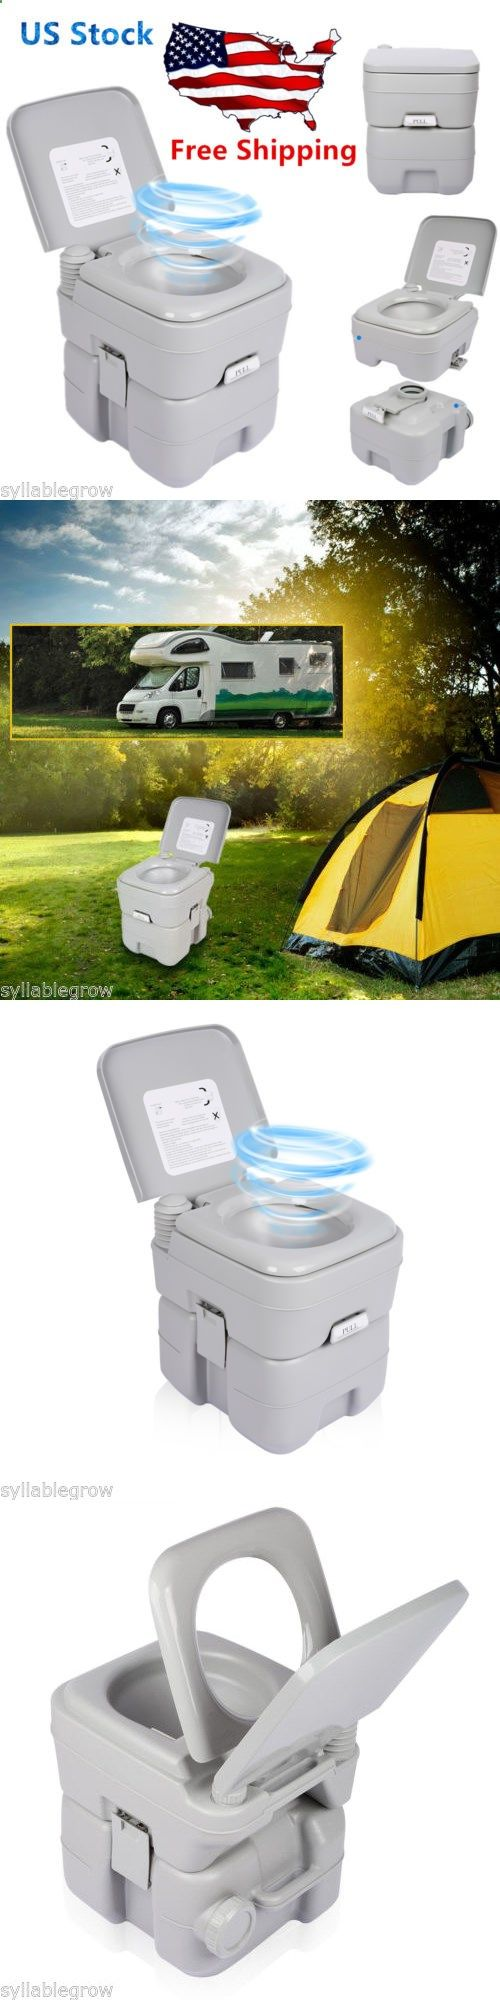 Portable Toilets And Accessories 181397 5 Gallon 20L Outdoor Camping Toilet Potty Caravan Travel